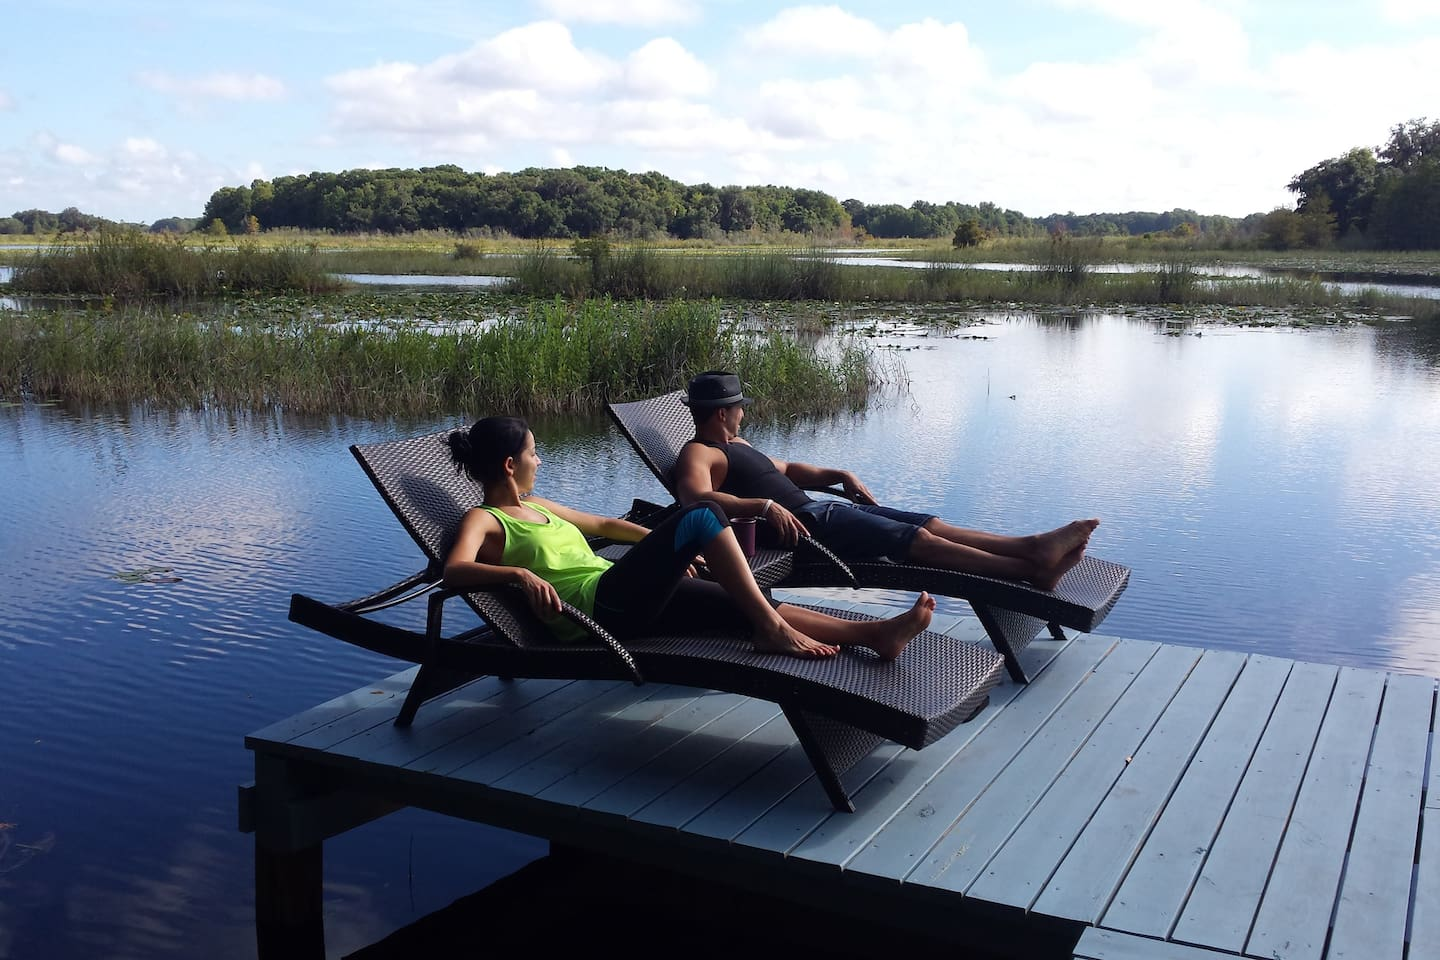 RELAX on the dock & take in the view.